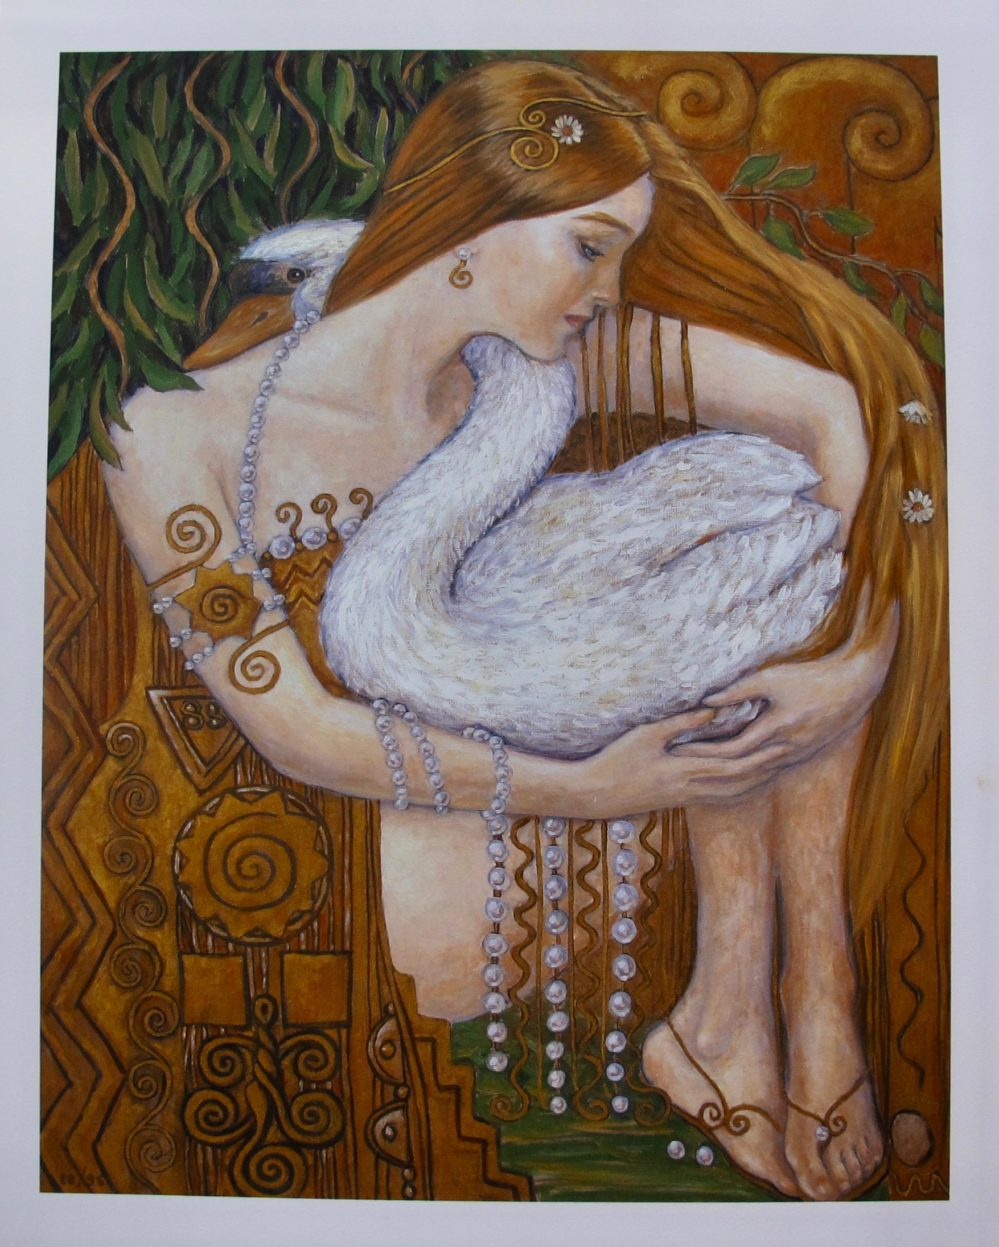 IRINA VITALIEVNA KARKABI Swan Princess Hand Signed Limited Edition Giclee